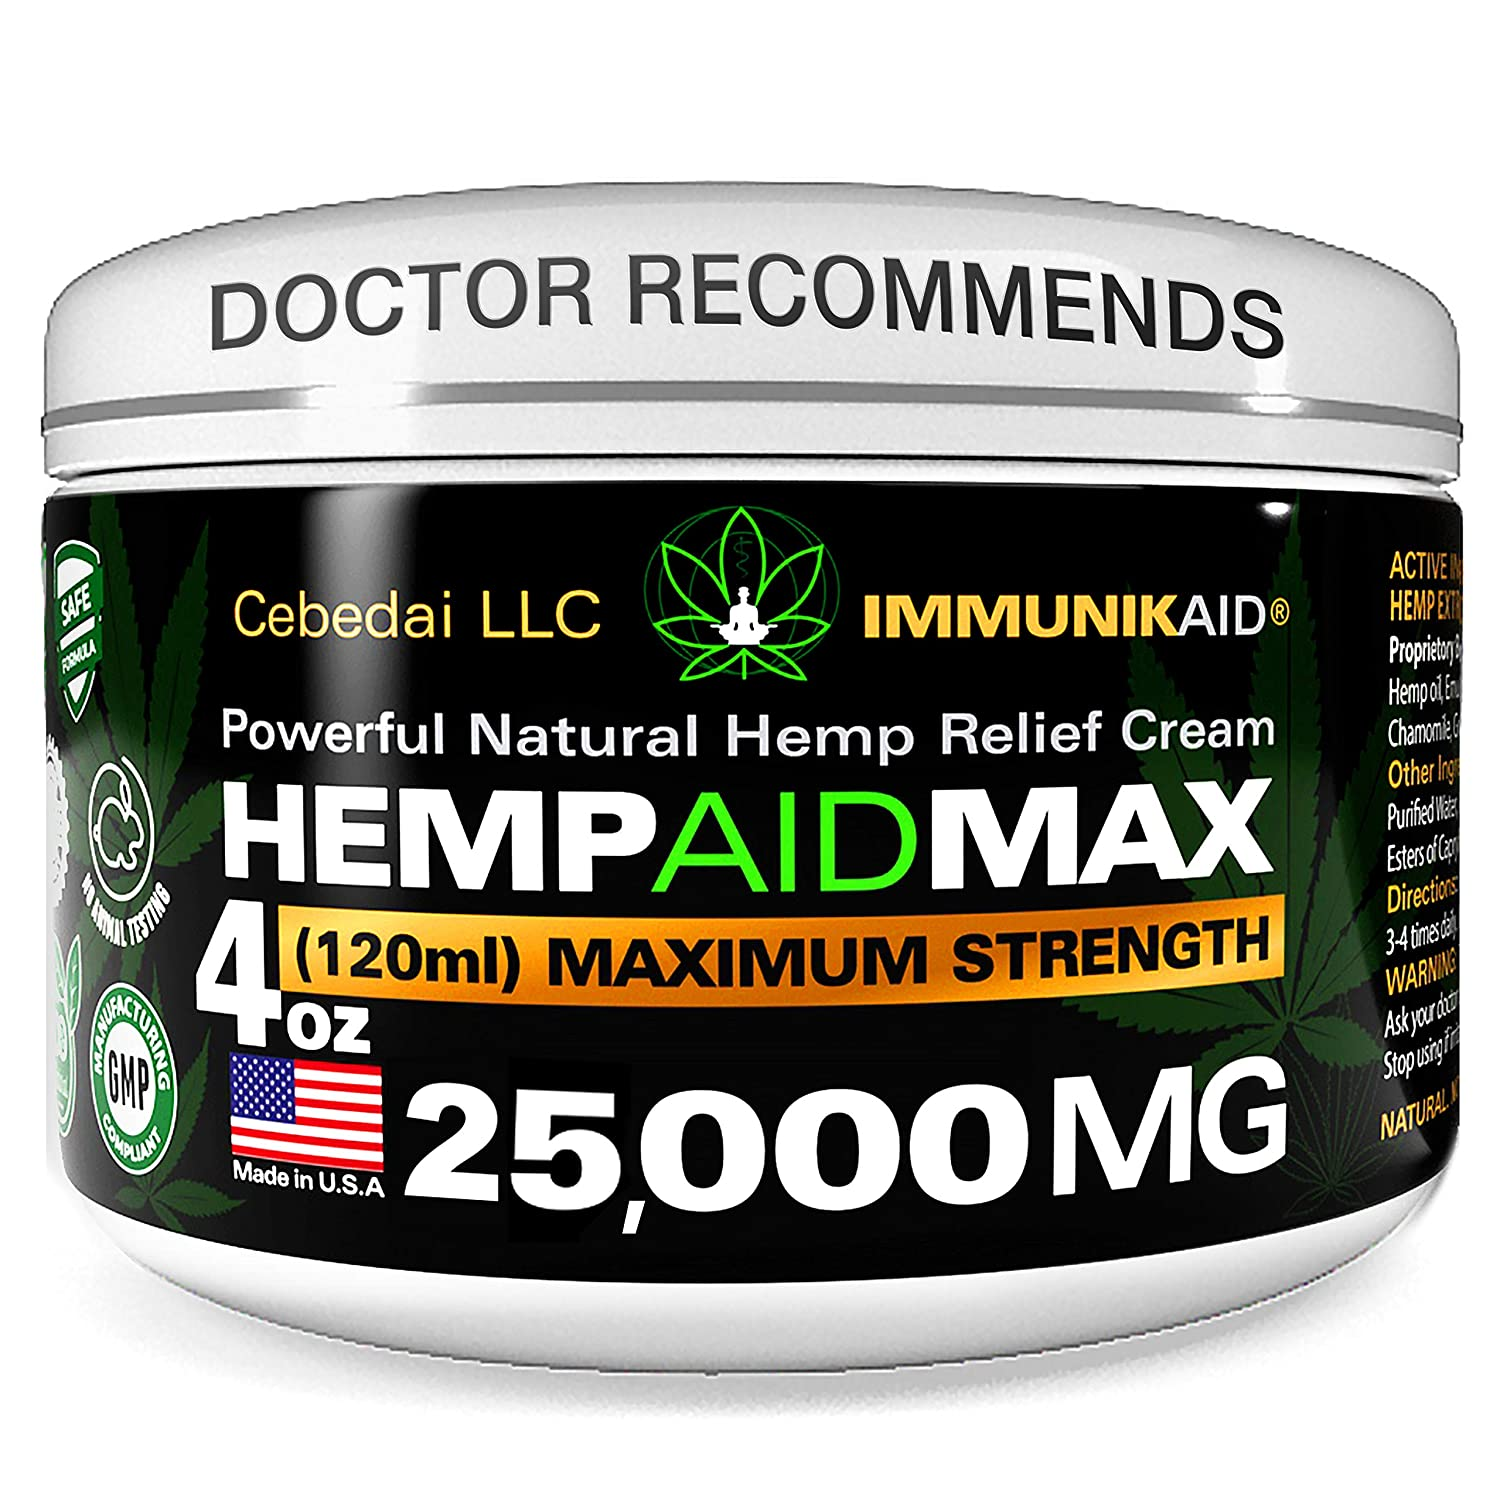 Premium 25000Mg Hemp Cream for Pain Relief - 4oz Pure Hemp Oil Extract - Made in USA - Extra Strength Natural Massage Lotion for Joint, Muscle, Knee, Back, Neck Inflammation - Topical Salve Balm